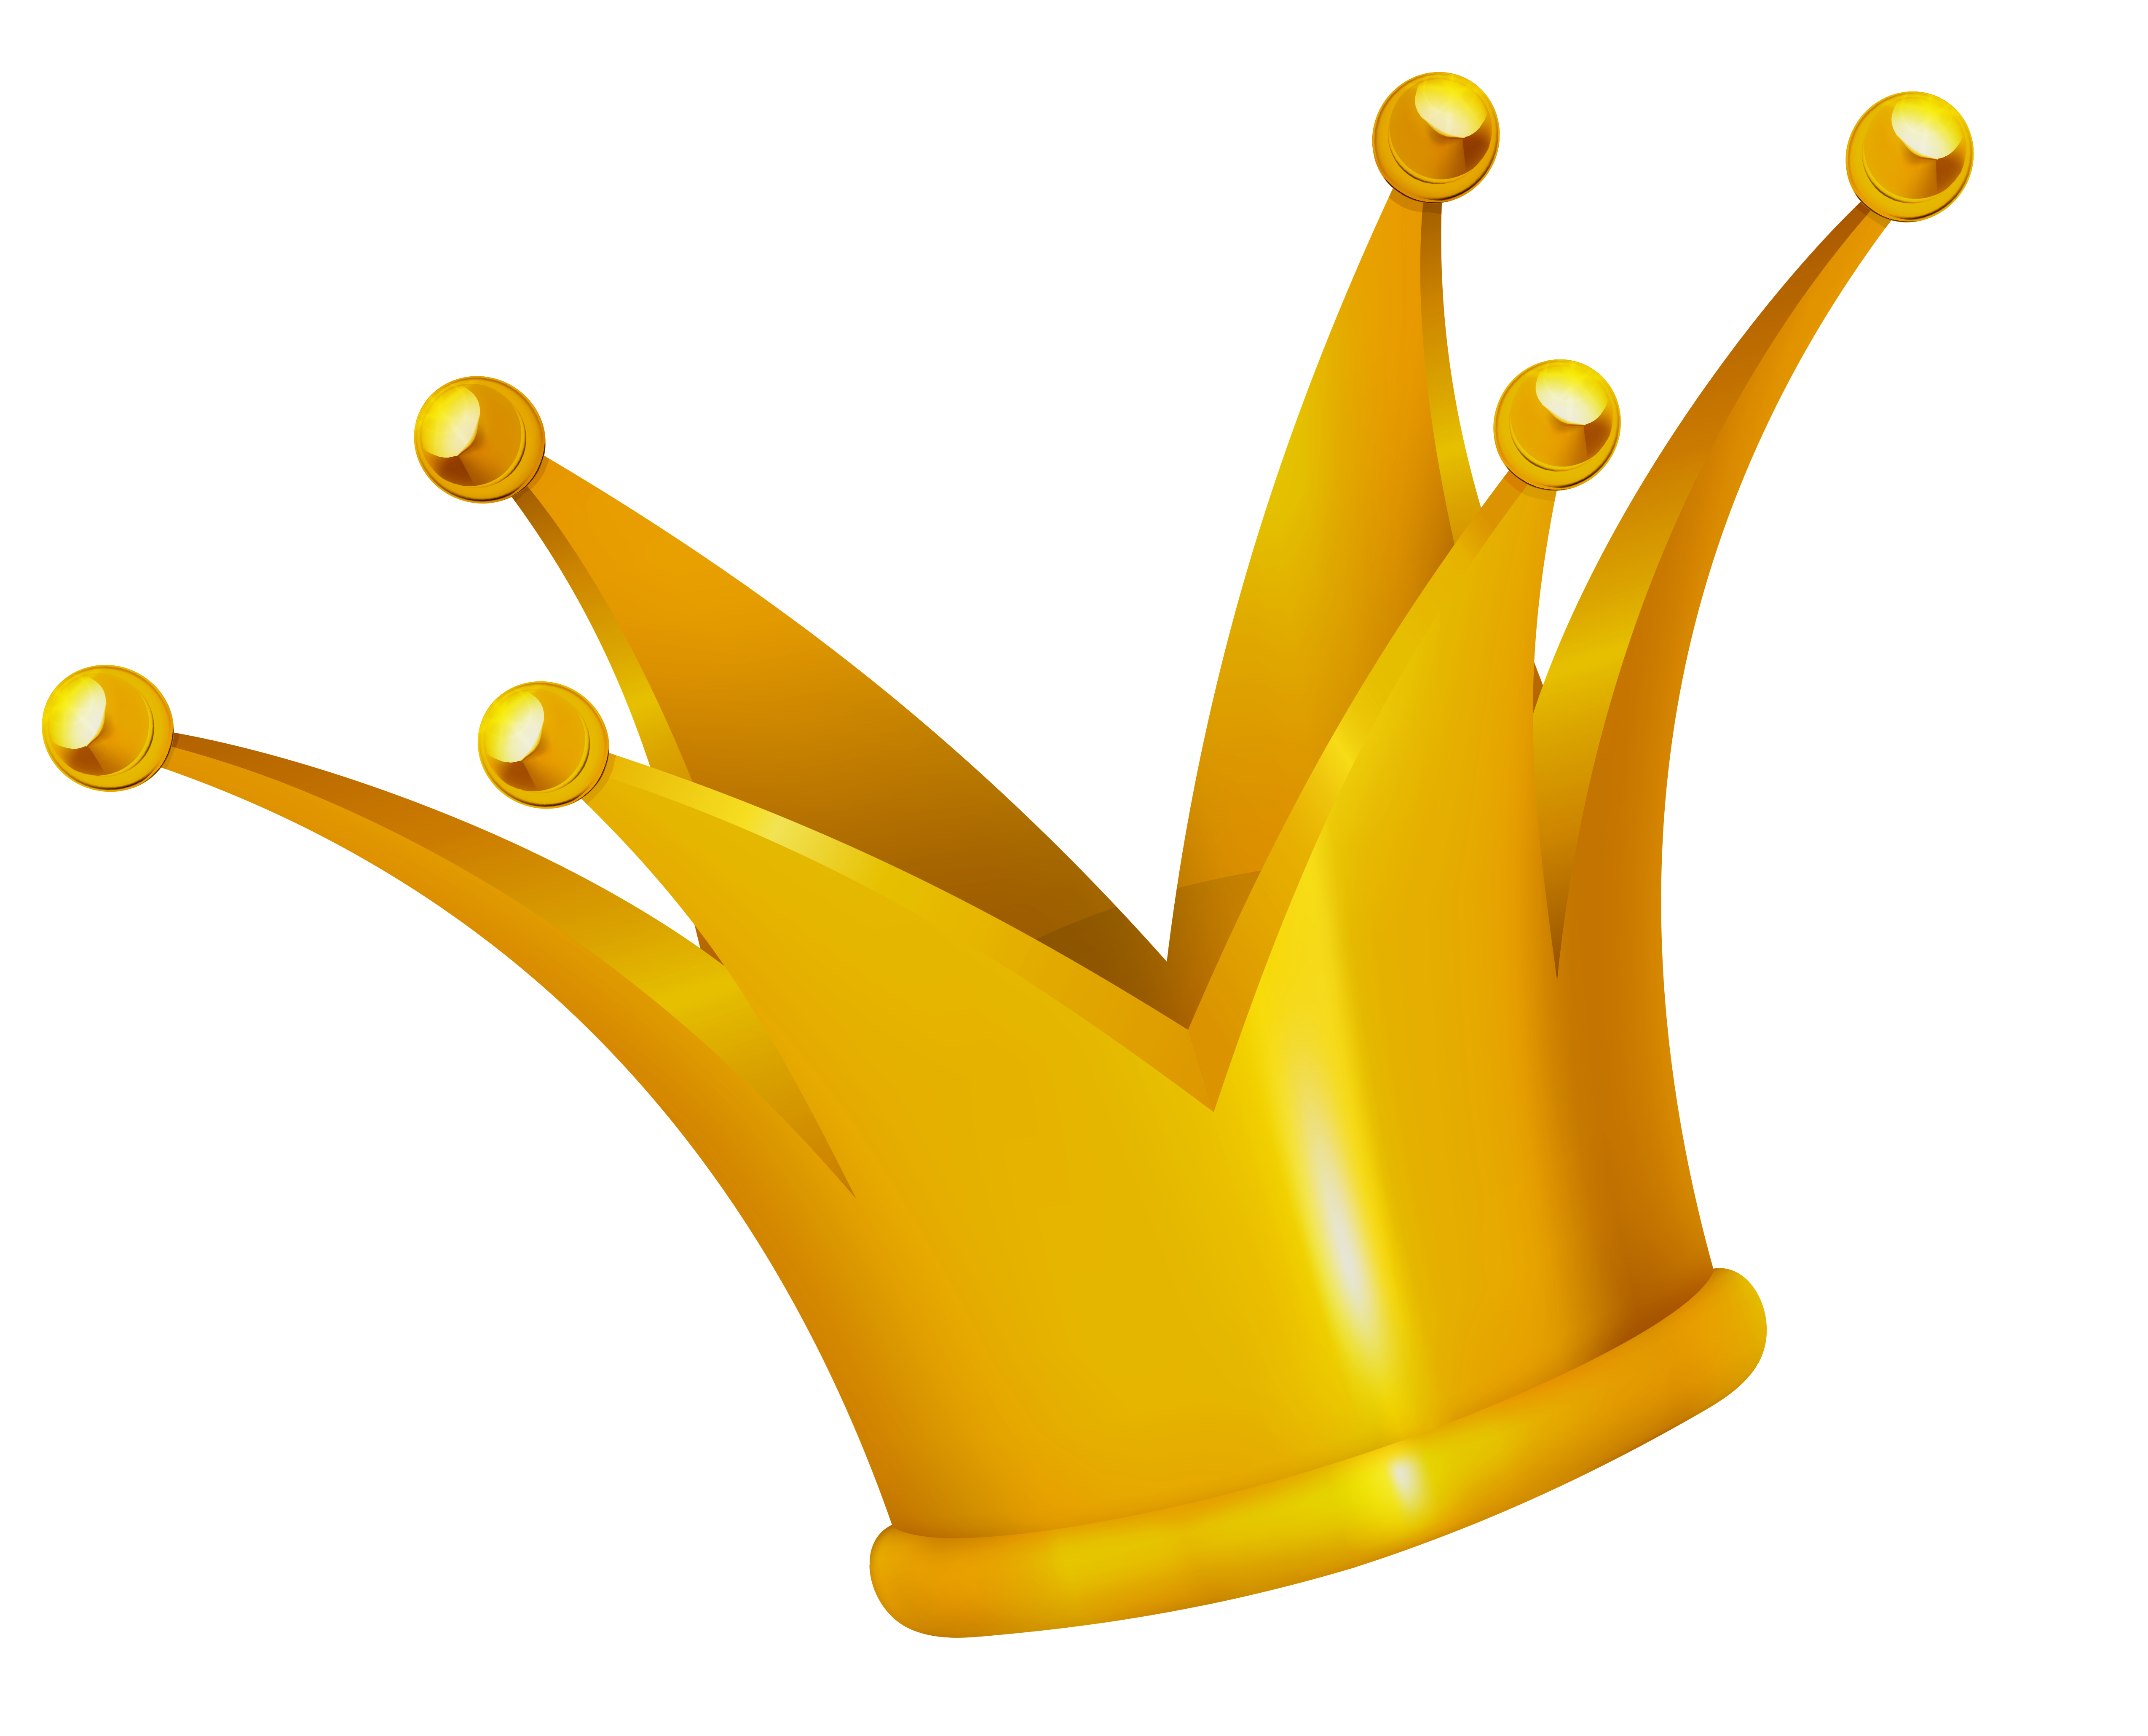 5098x4120 Gold Crown Clipart Pictureu200b Gallery Yopriceville